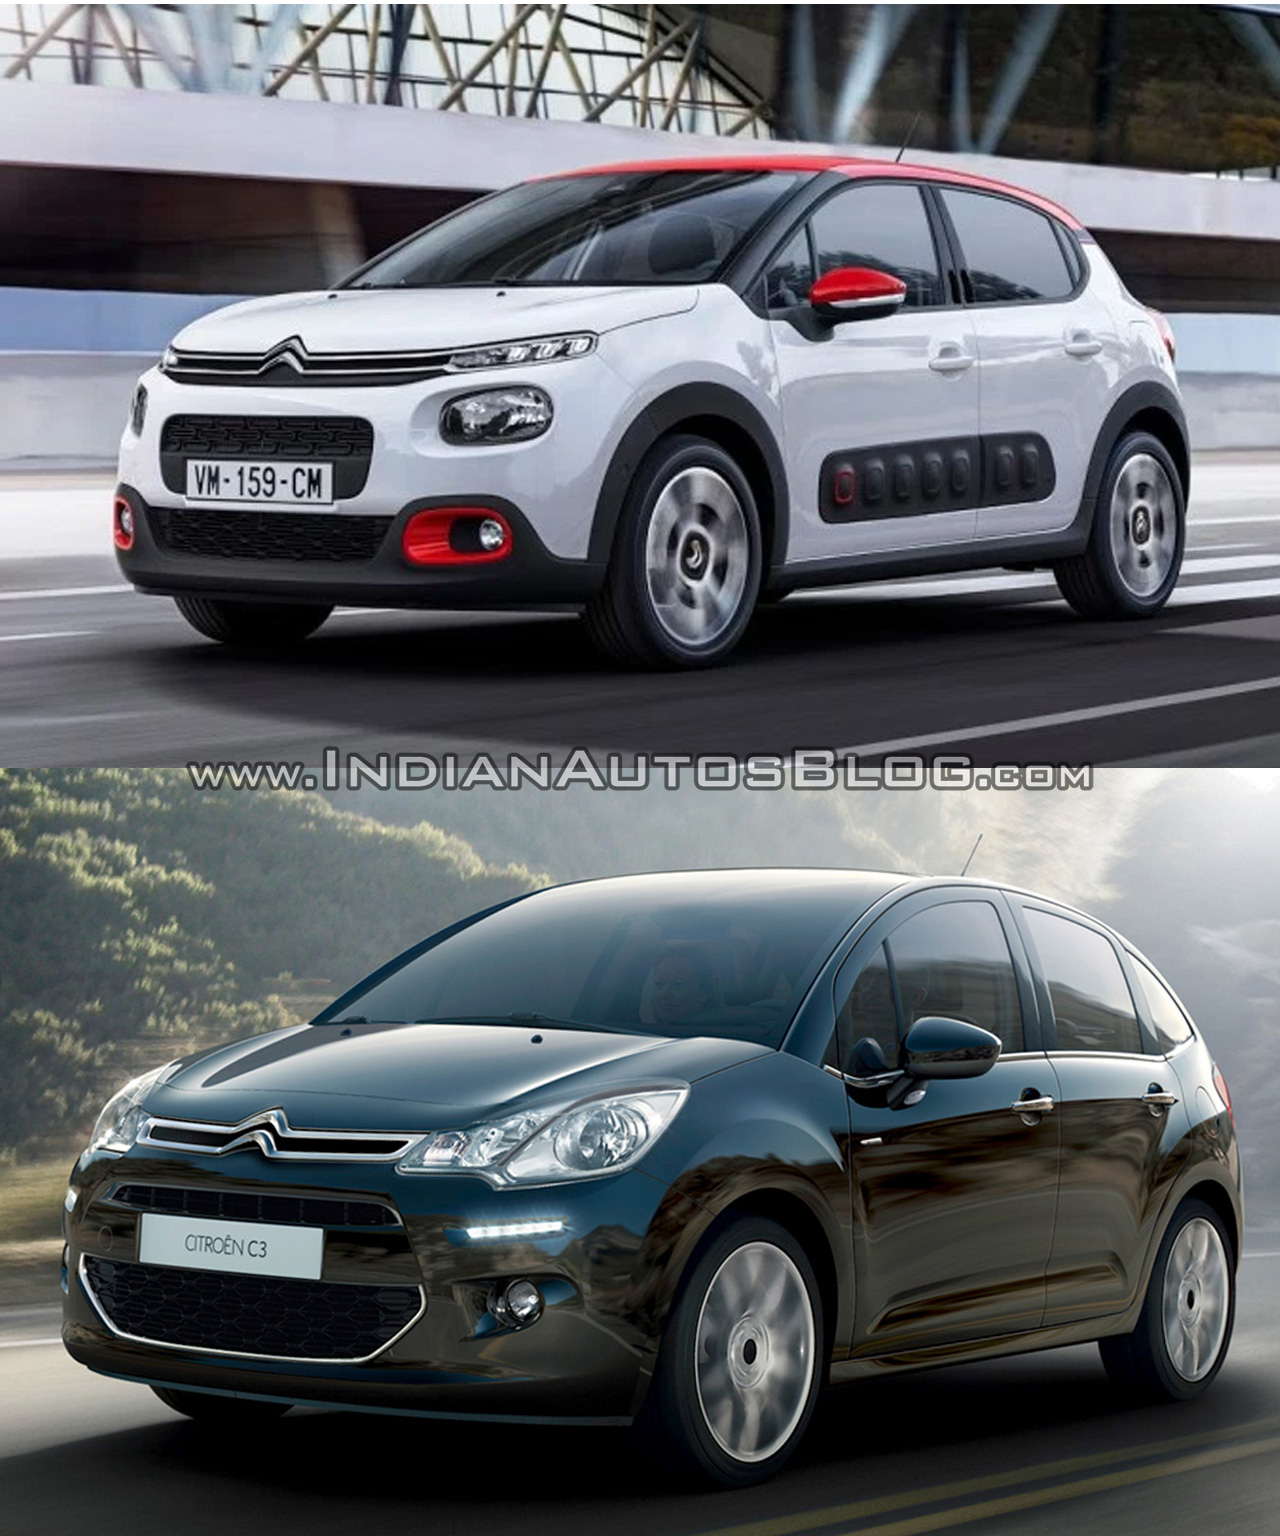 2016 Citroen C3 vs. 2014 Citroen C3 front three quarters